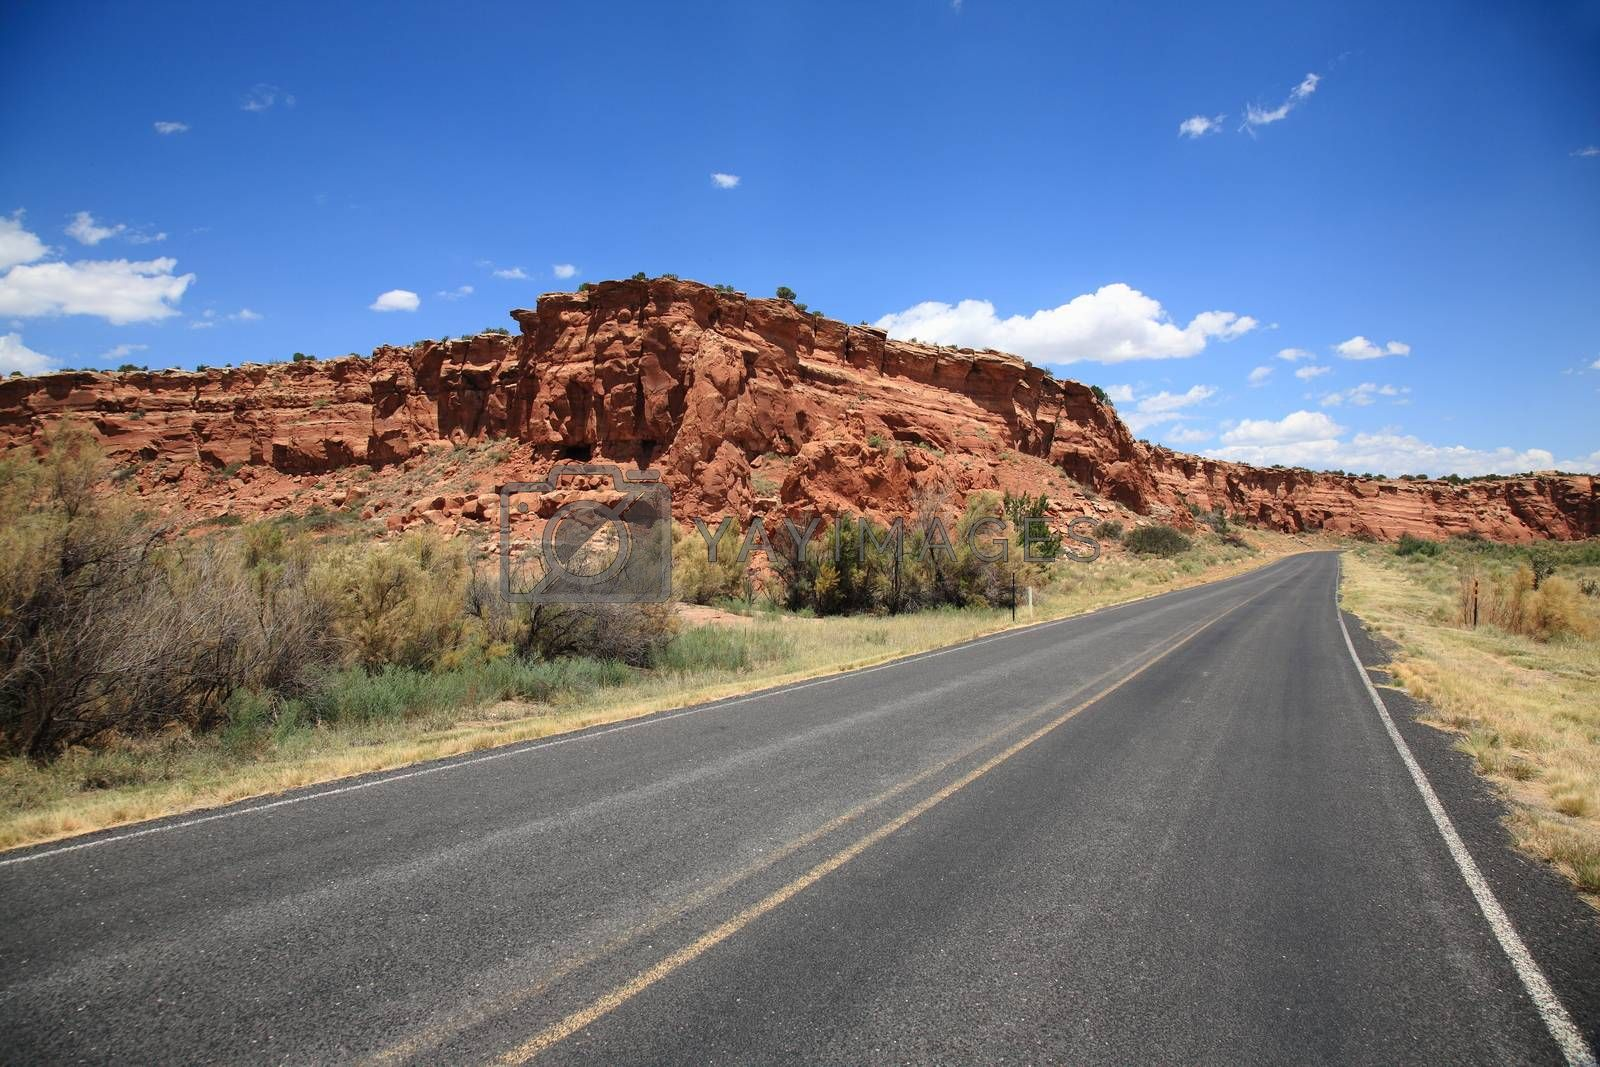 Road heads towards the mountains and buttes in Southwestern United States